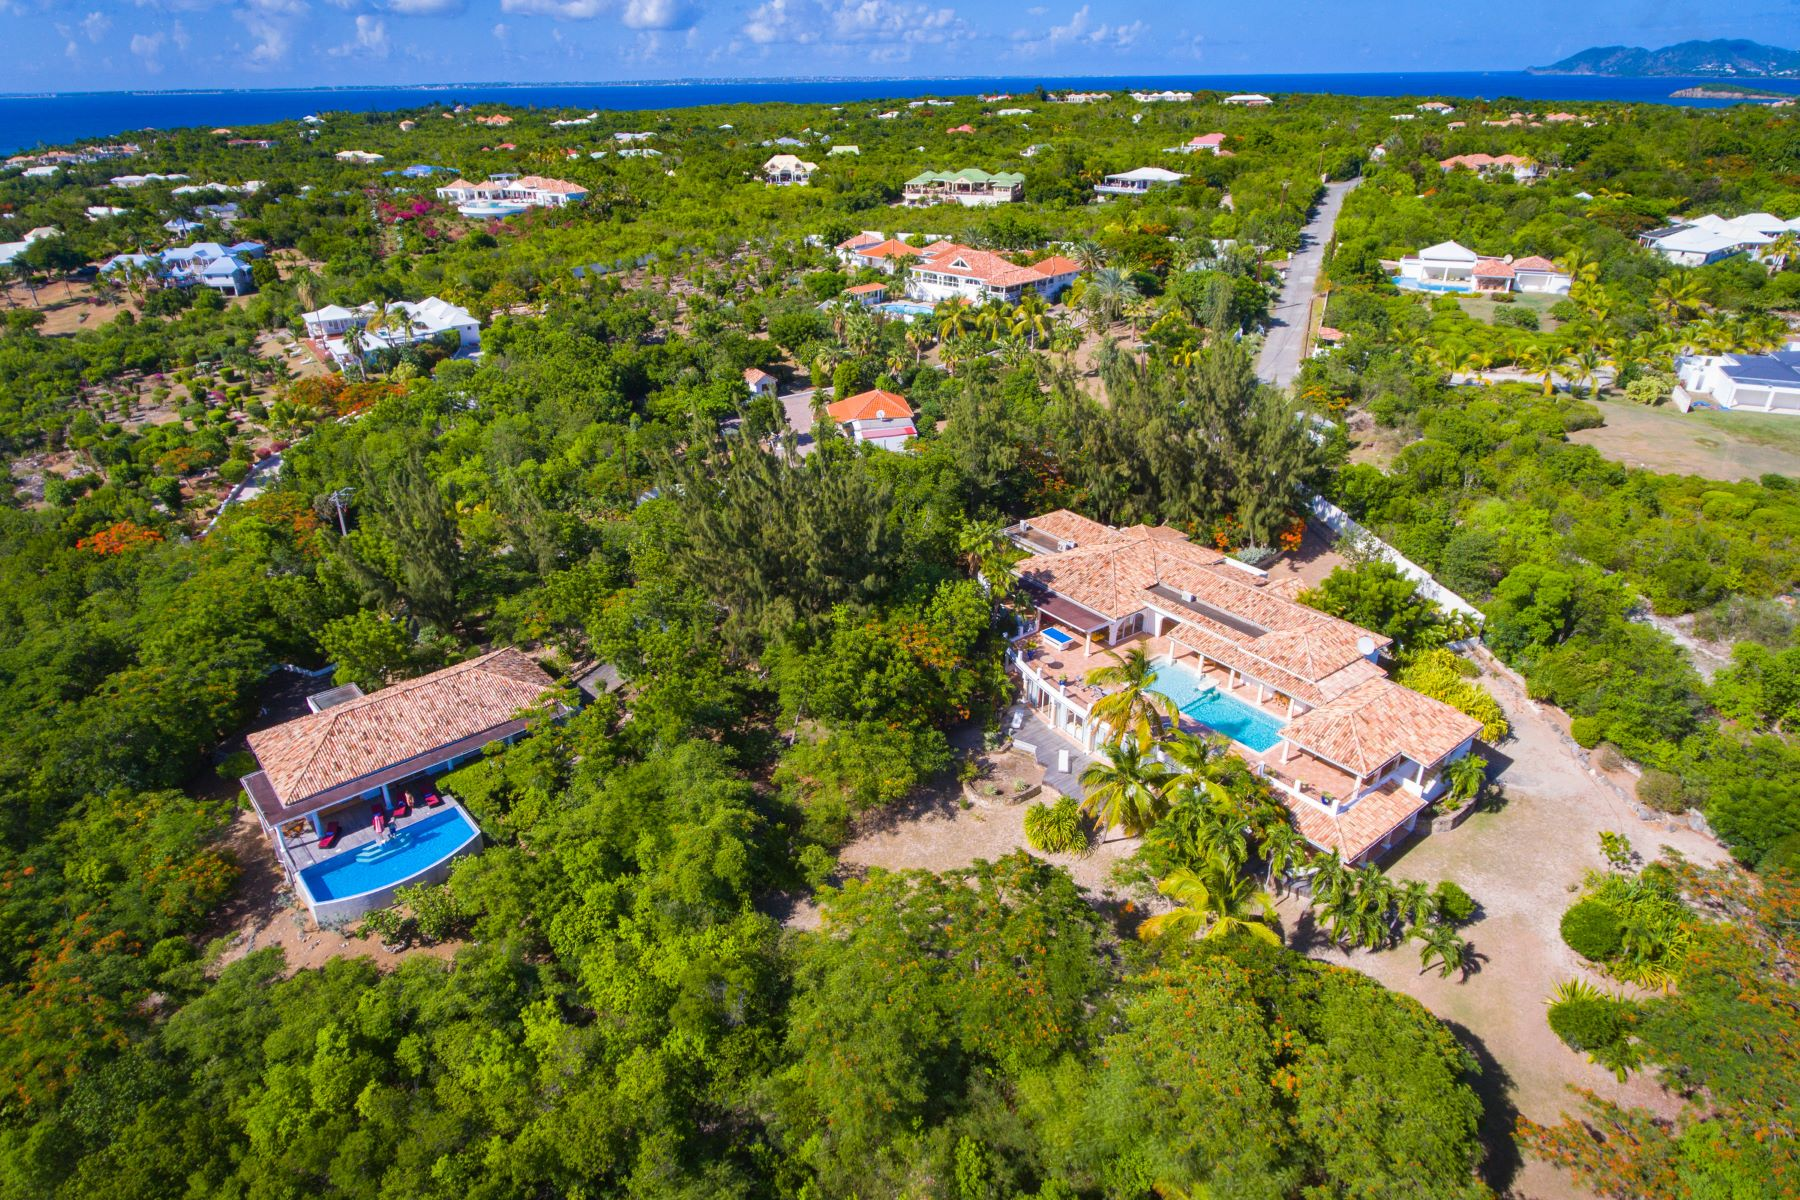 Single Family Home for Sale at La Provençale La Provençale Terres Basses, Cities In Saint Martin 97150 St. Martin